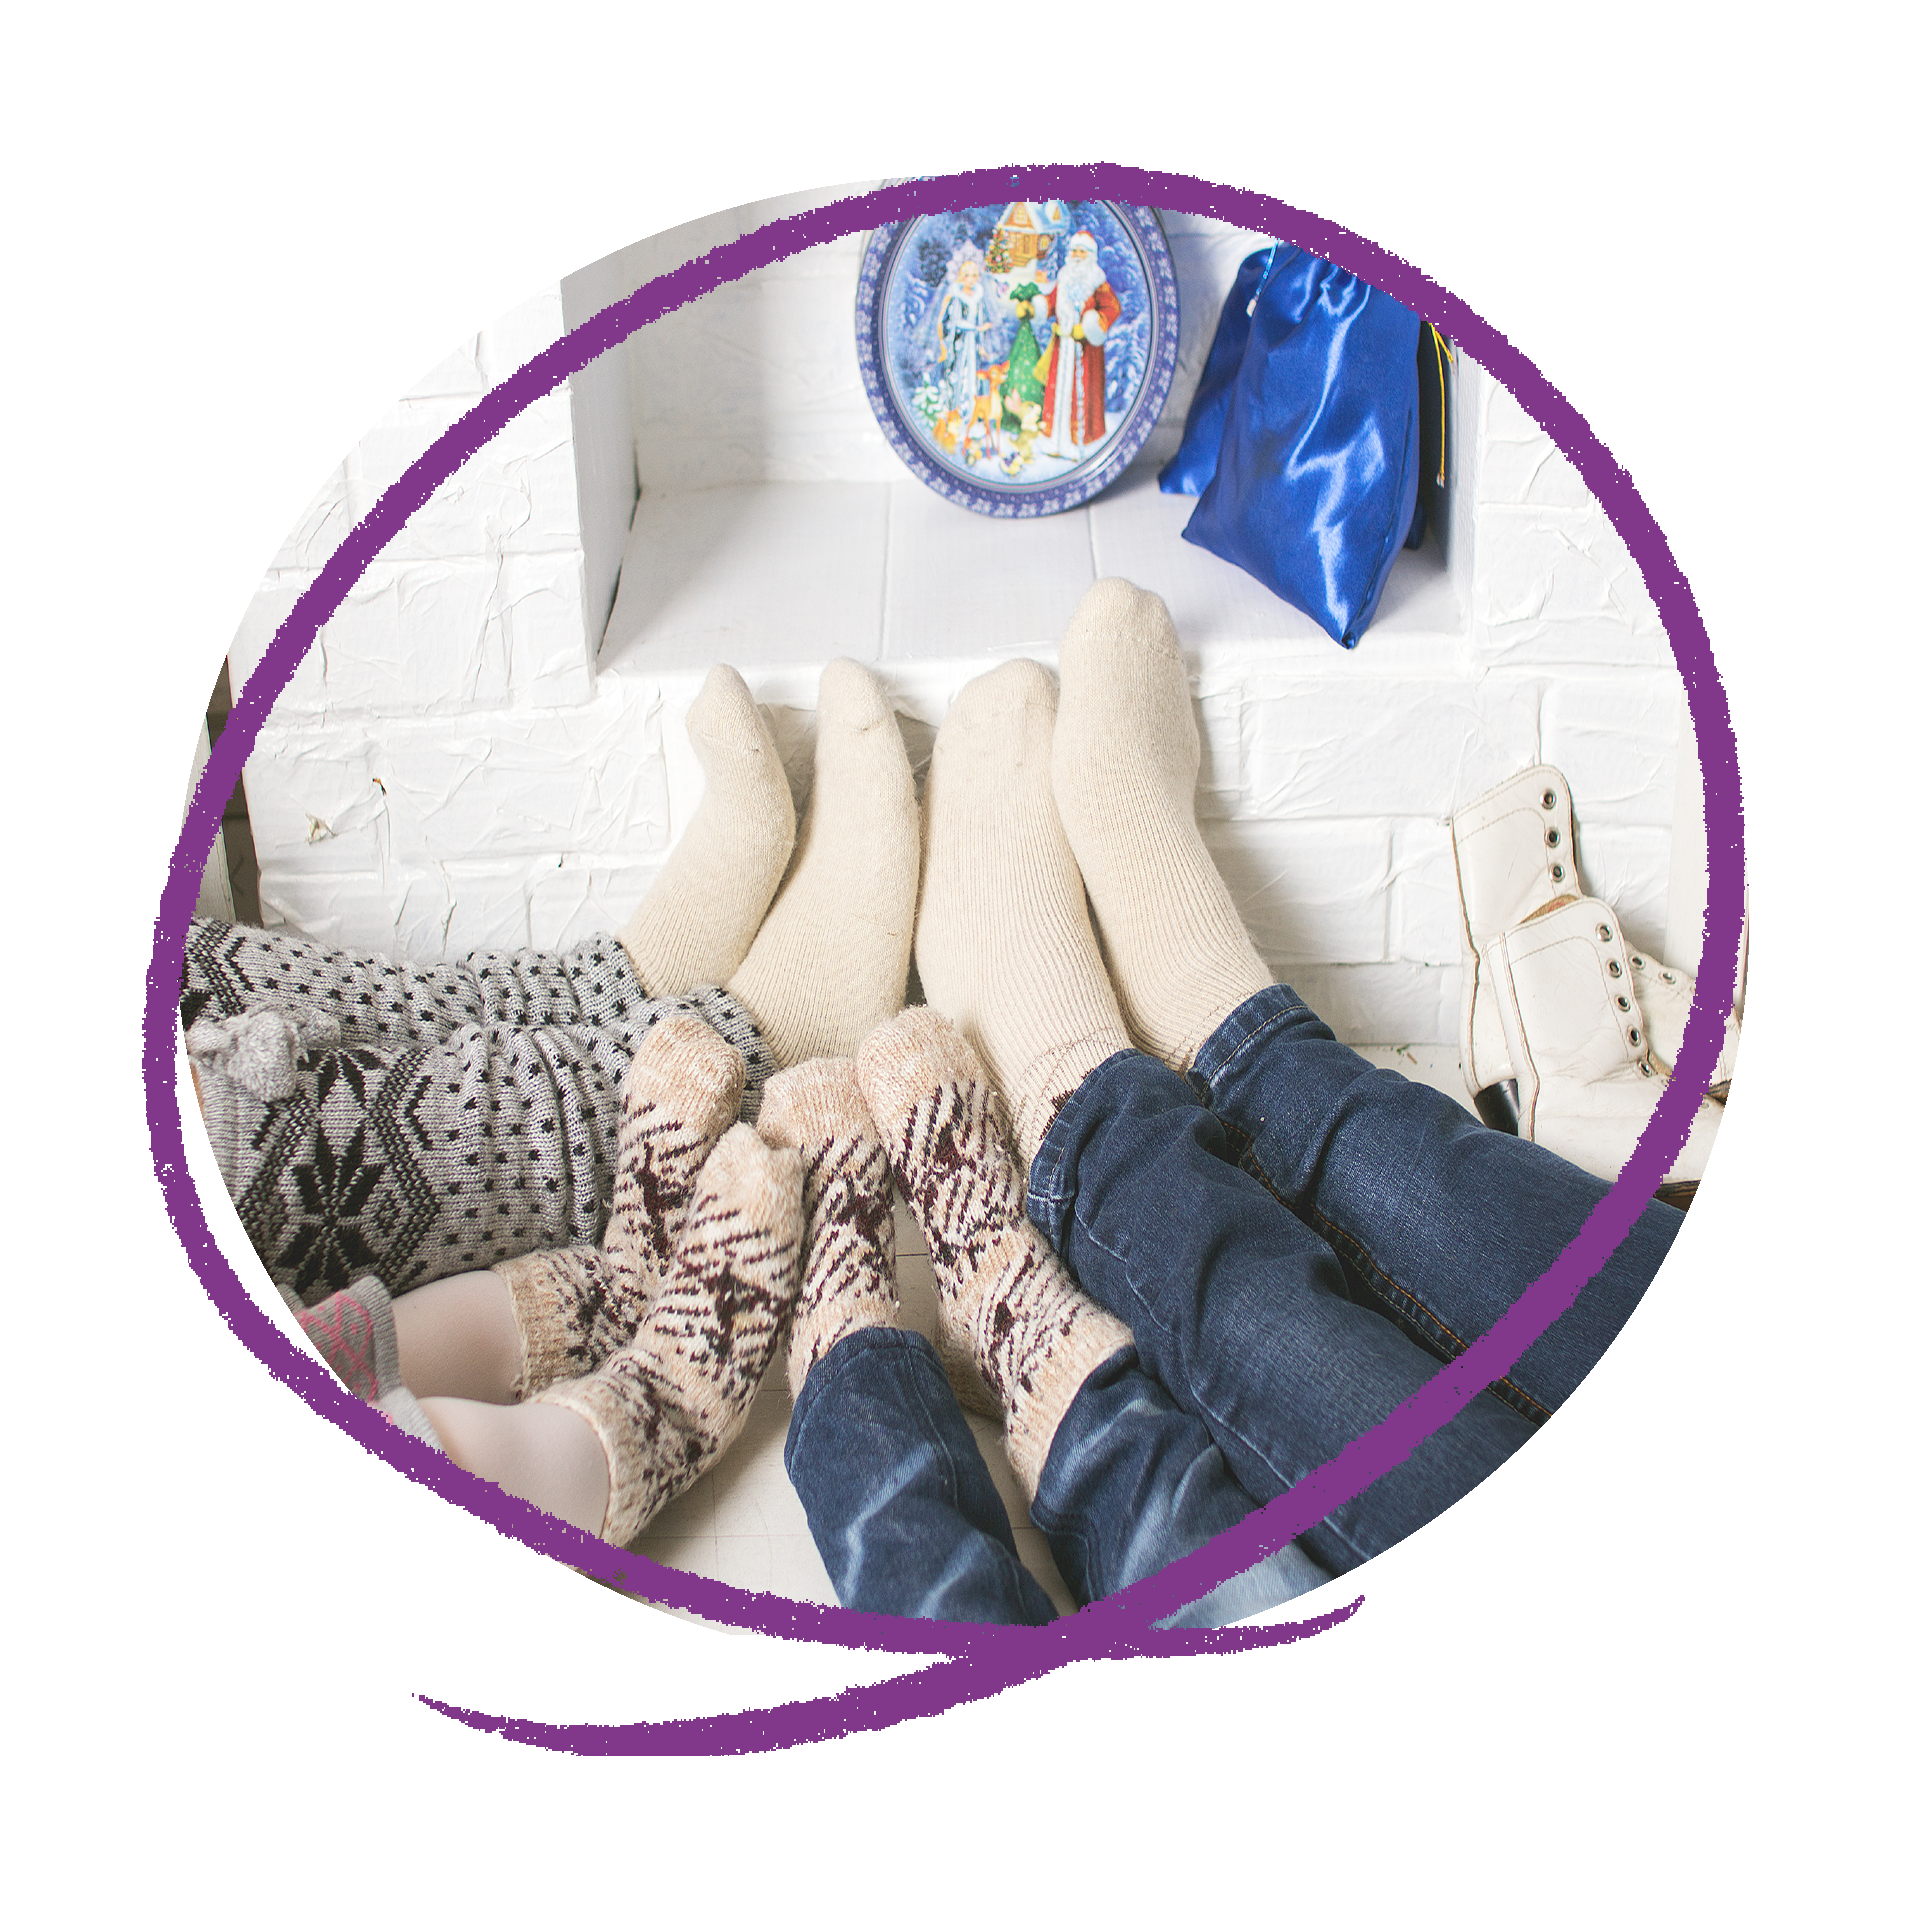 Photo of the feet of a family of four wearing thick socks. Two adults and two children.